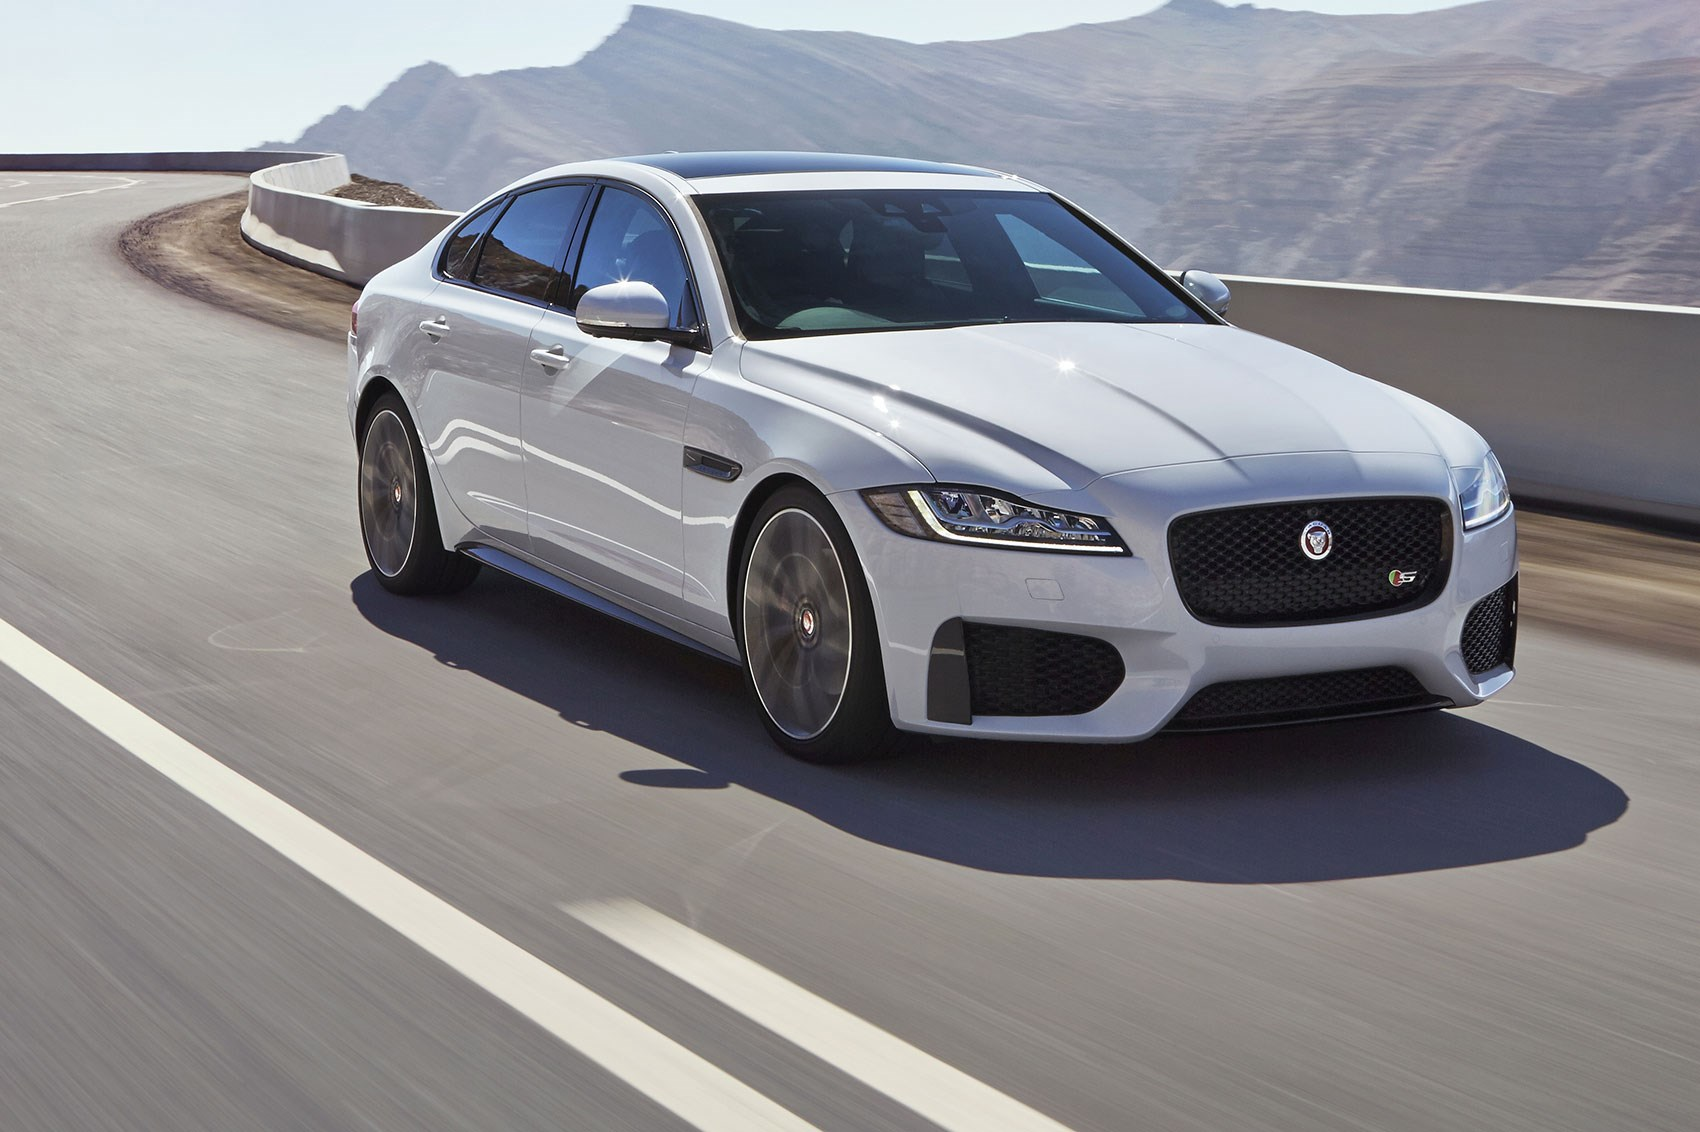 jaguar xf s 2016 review by car magazine. Black Bedroom Furniture Sets. Home Design Ideas